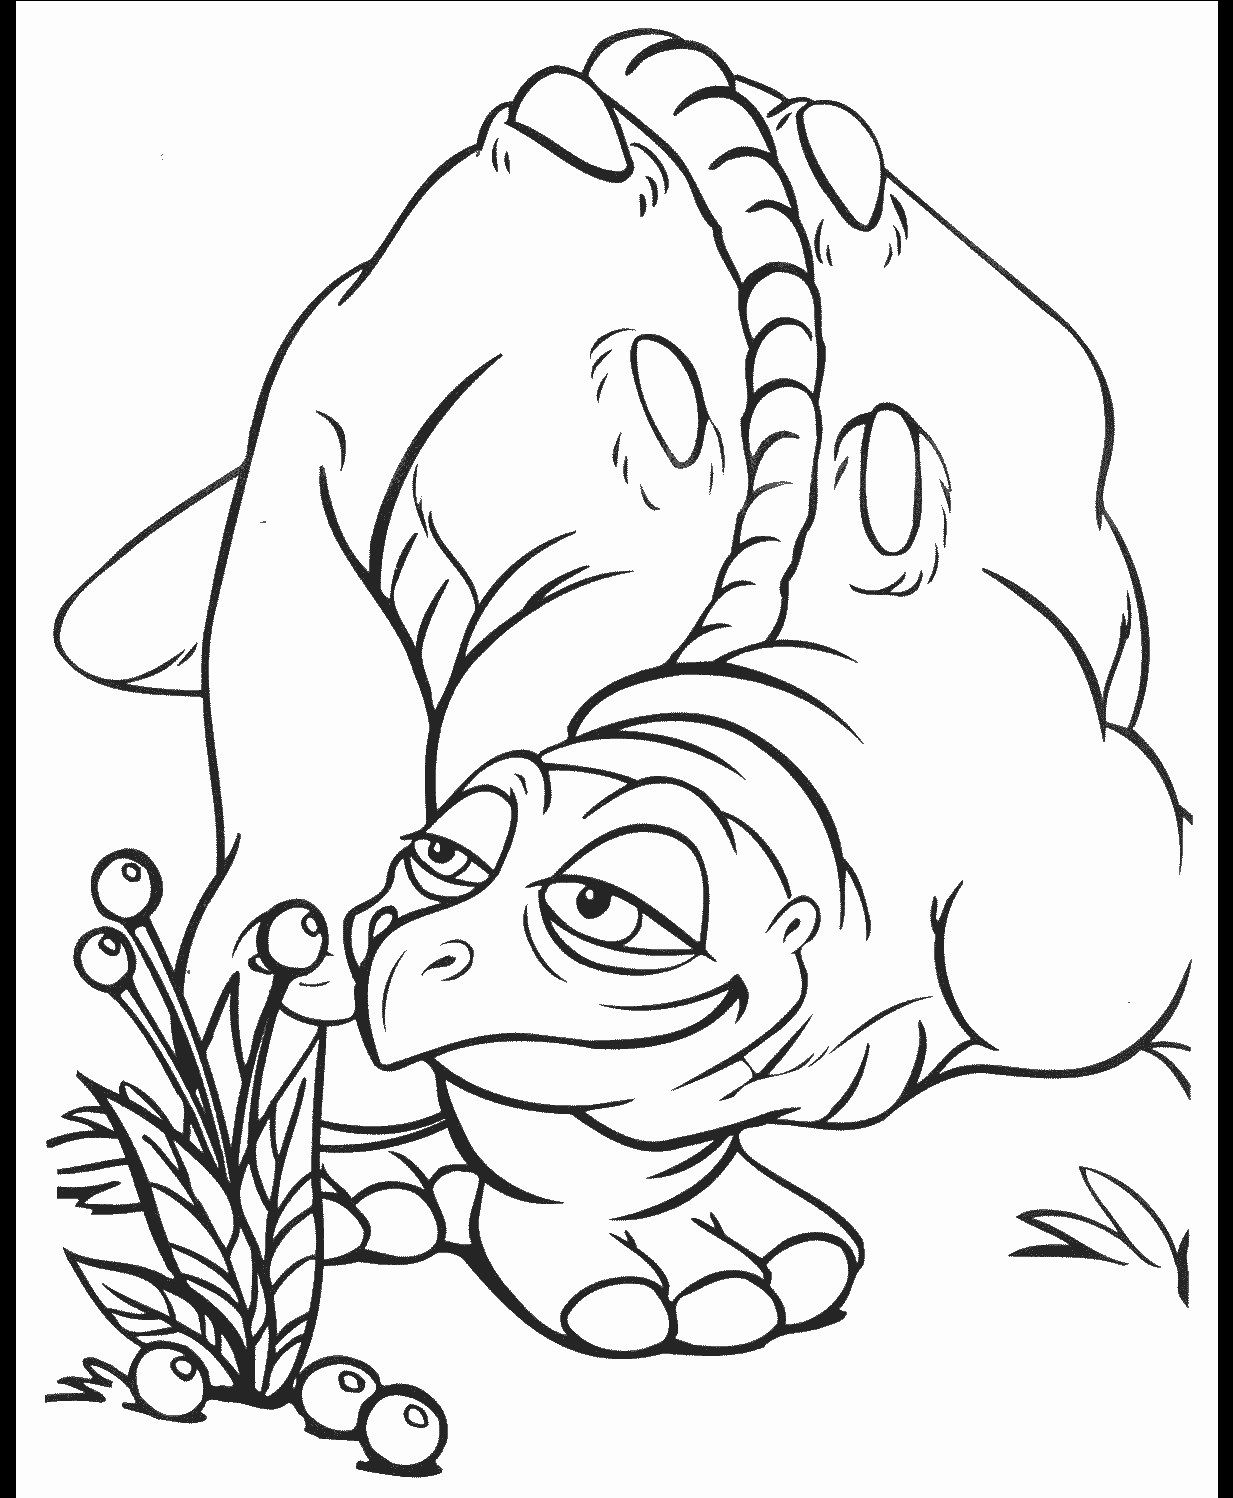 Pretty Photo Of Land Before Time Coloring Pages Davemelillo Com Dinosaur Coloring Pages Animal Coloring Pages Dinosaur Coloring